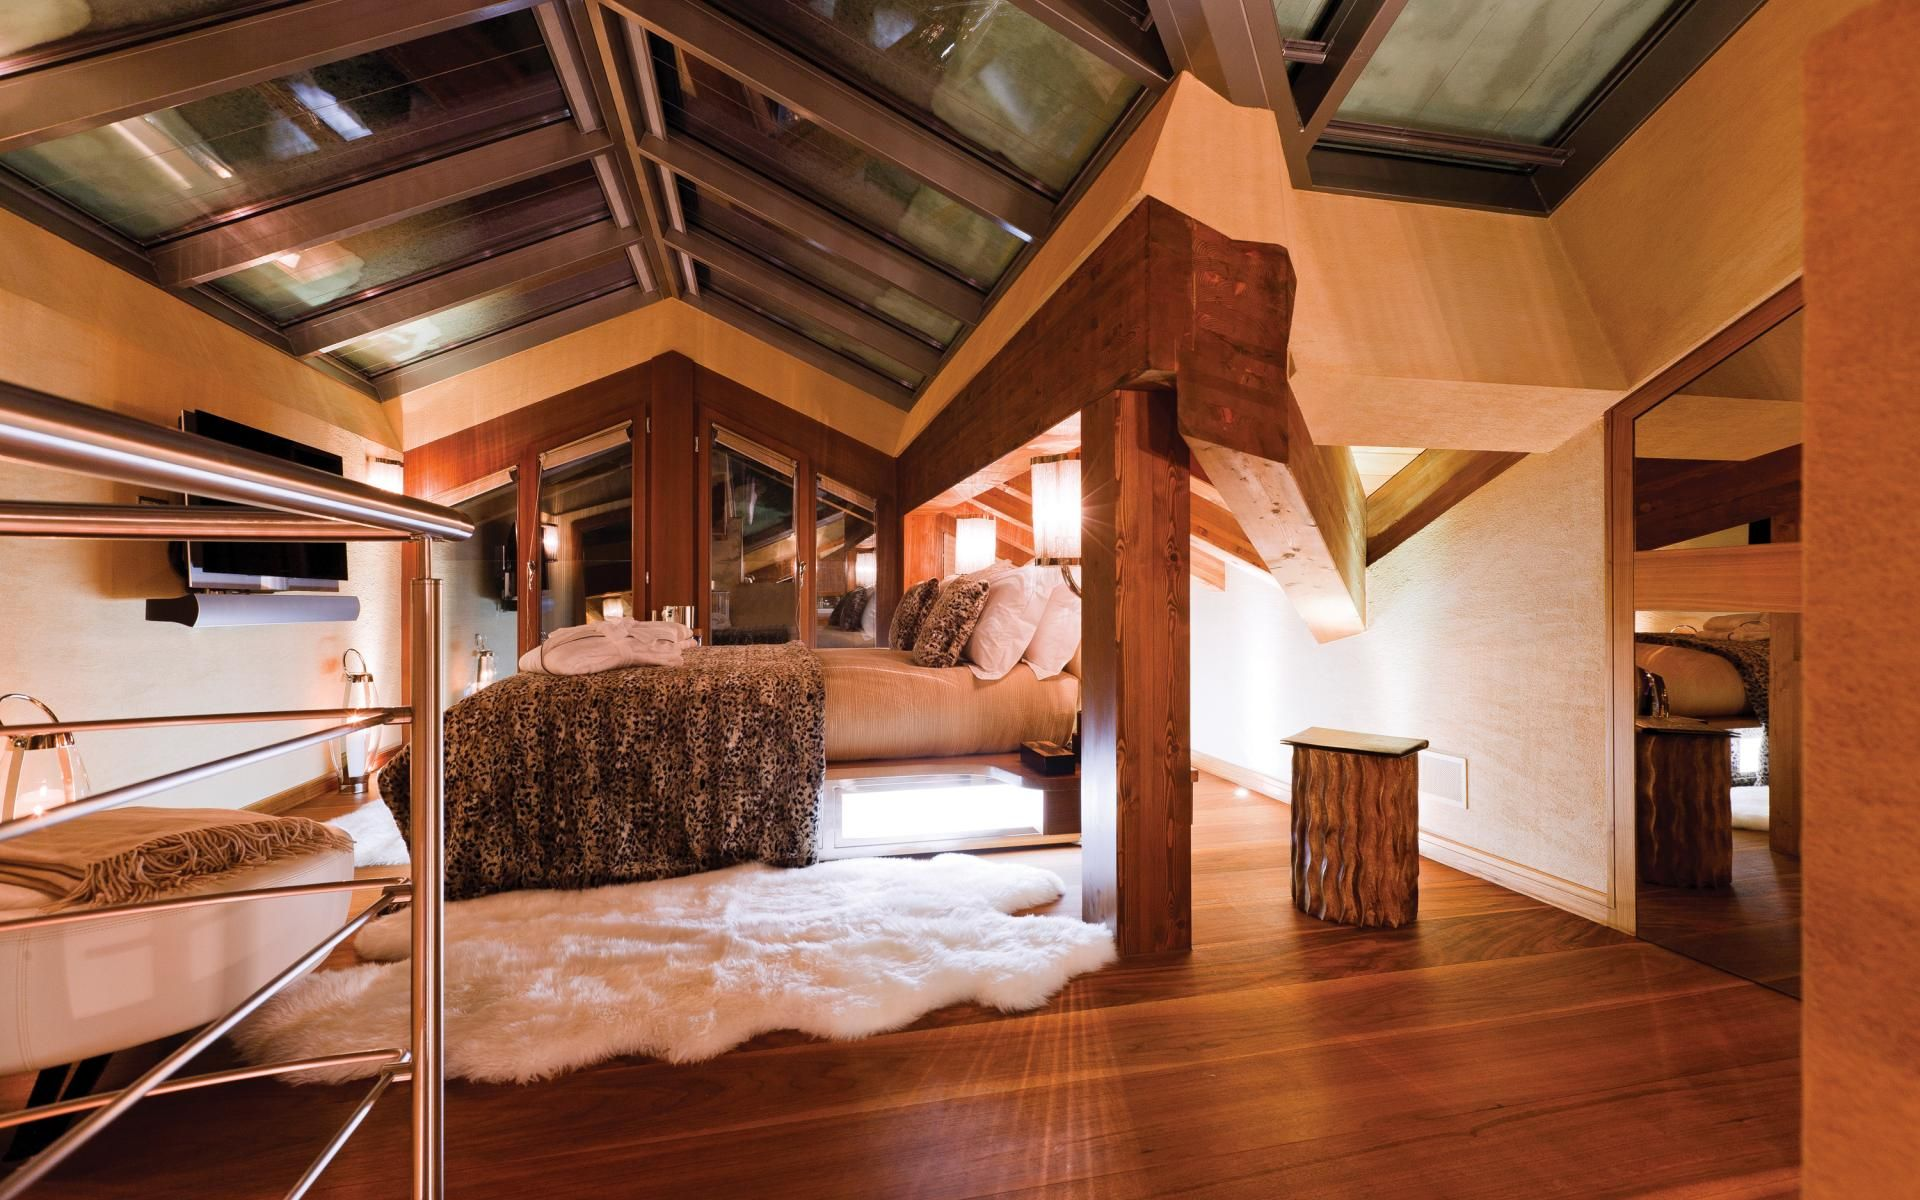 Luxury Ski Chalet Zermatt Peak Switzerland Photo 555 Luxe Alpine Lodge Pinterest Gl Roof And